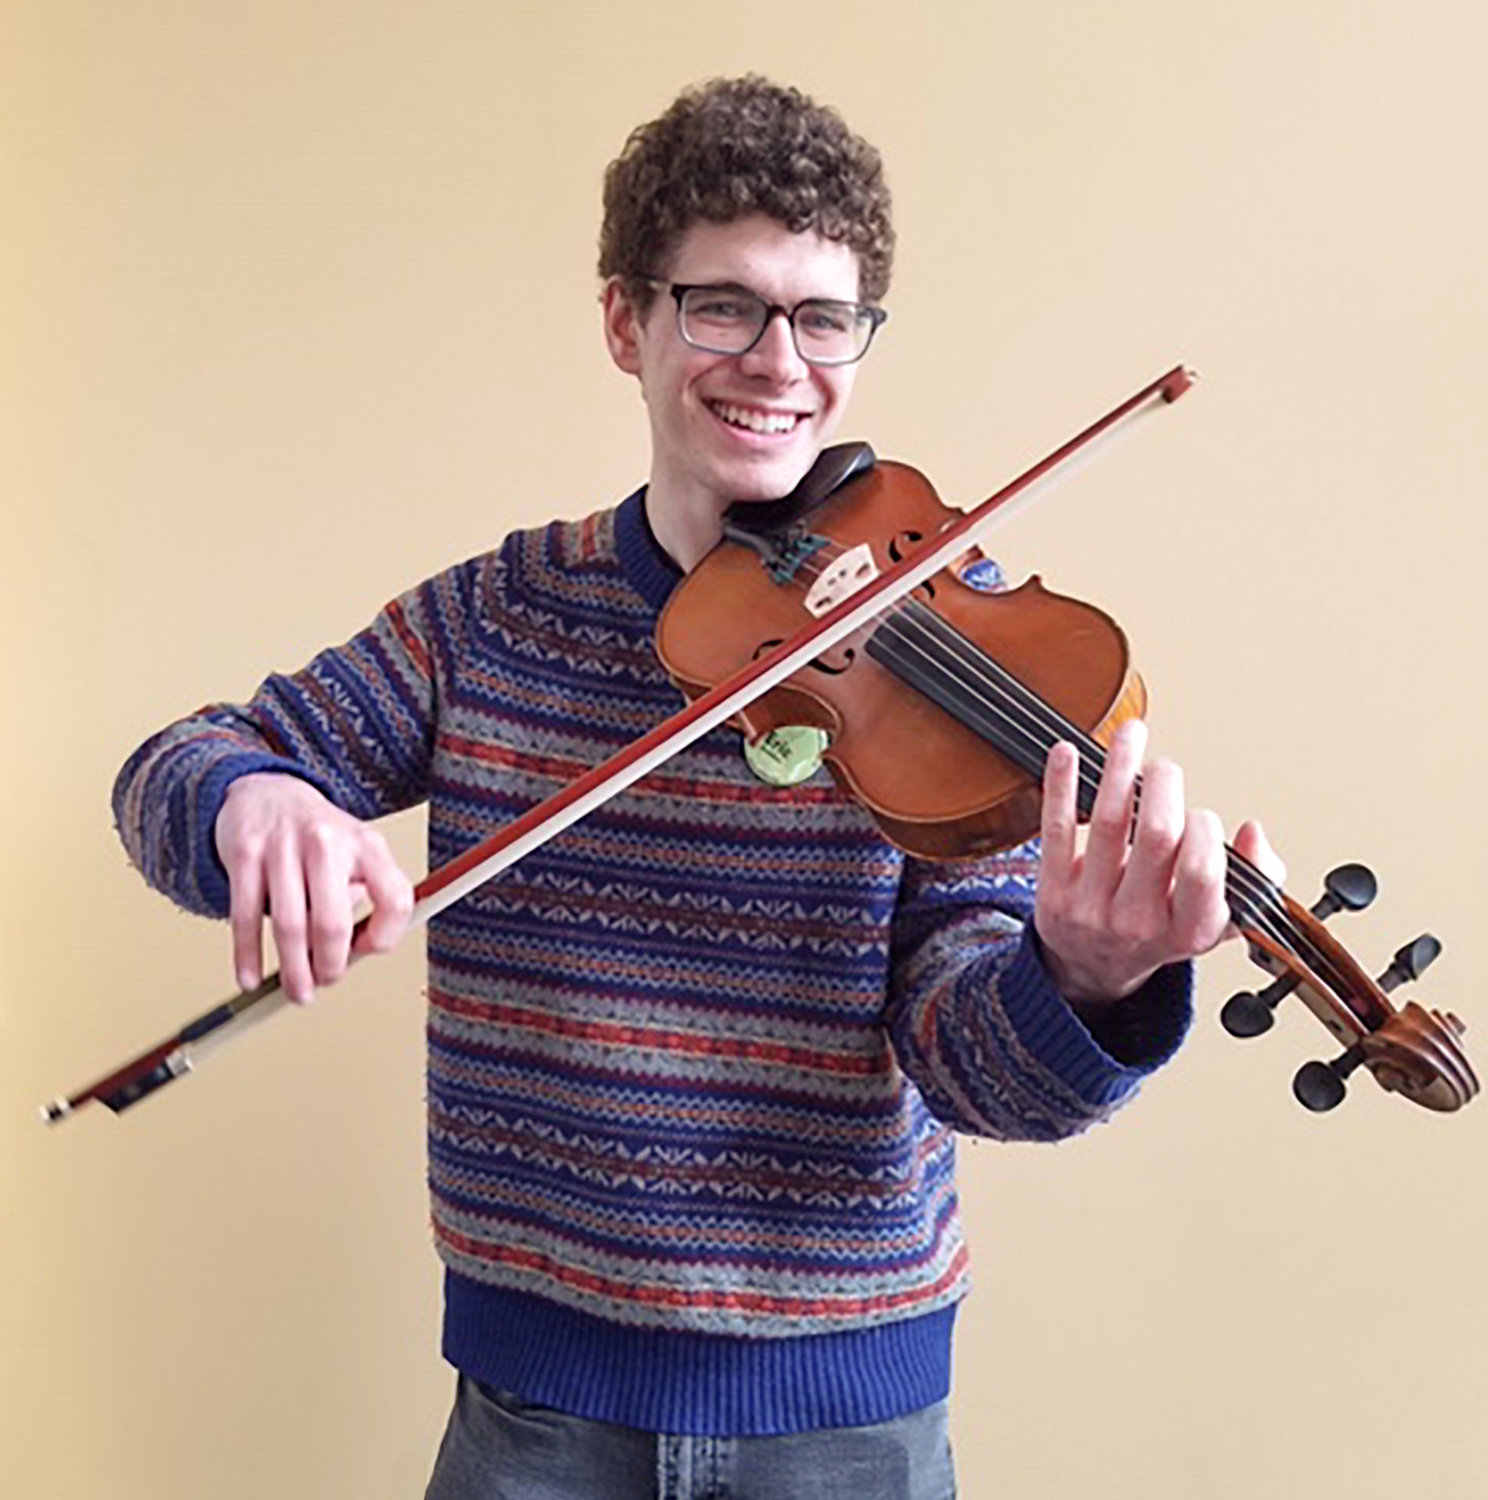 Eric Boodman plays fiddle at the Rehoboth contra dance on Friday, June 14